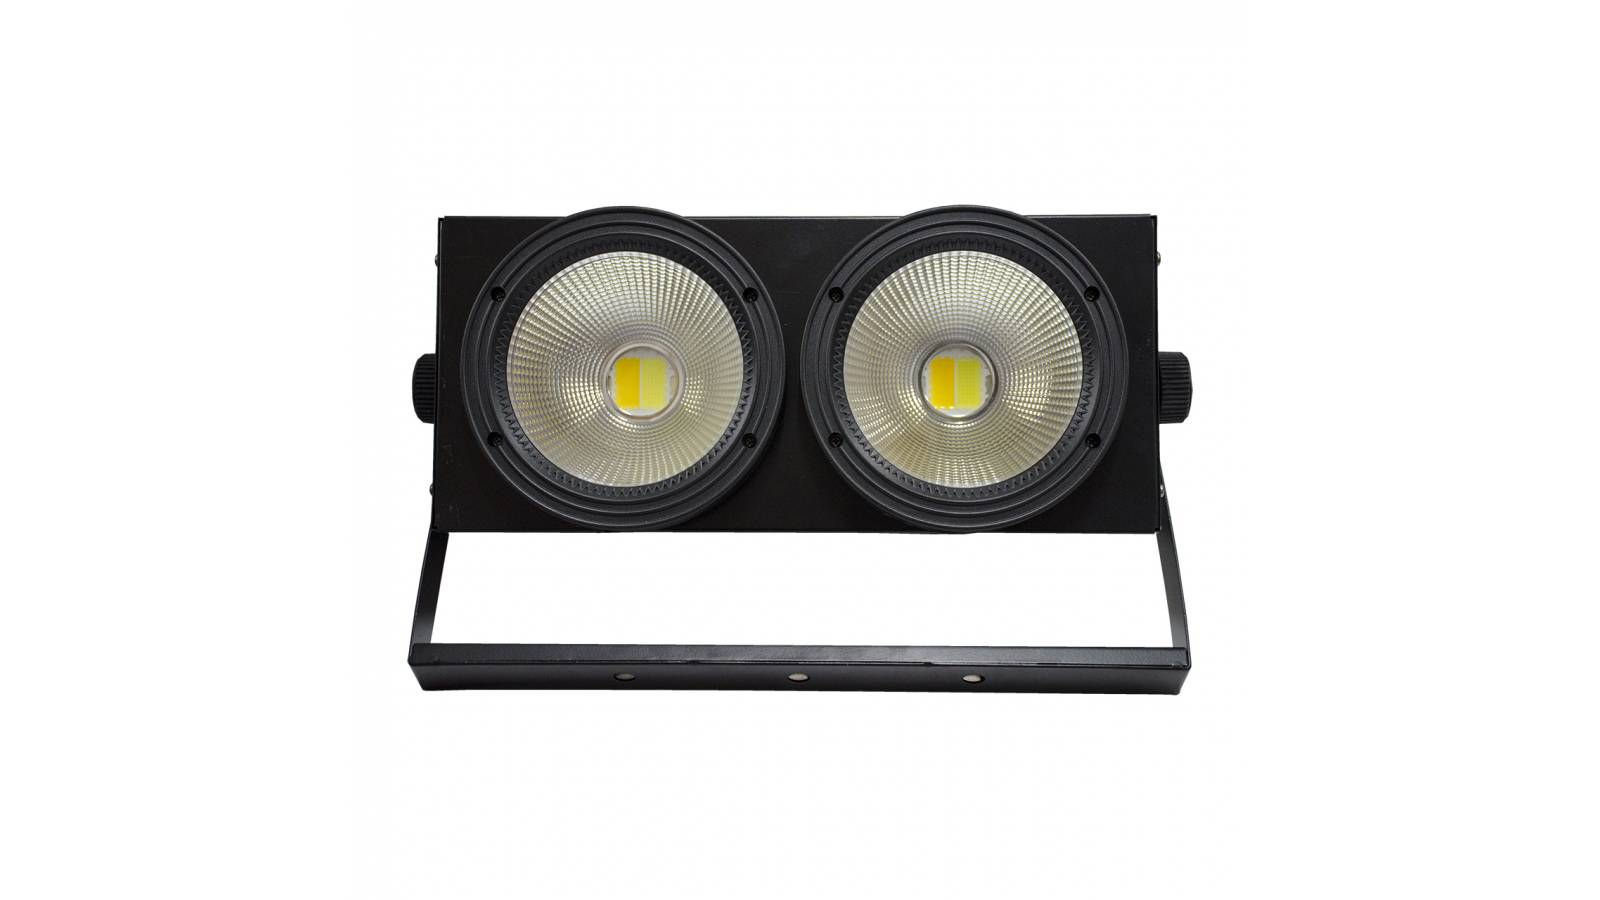 Blinder Cegador Mini Bruts LED 2x100W COB LED WW/CW